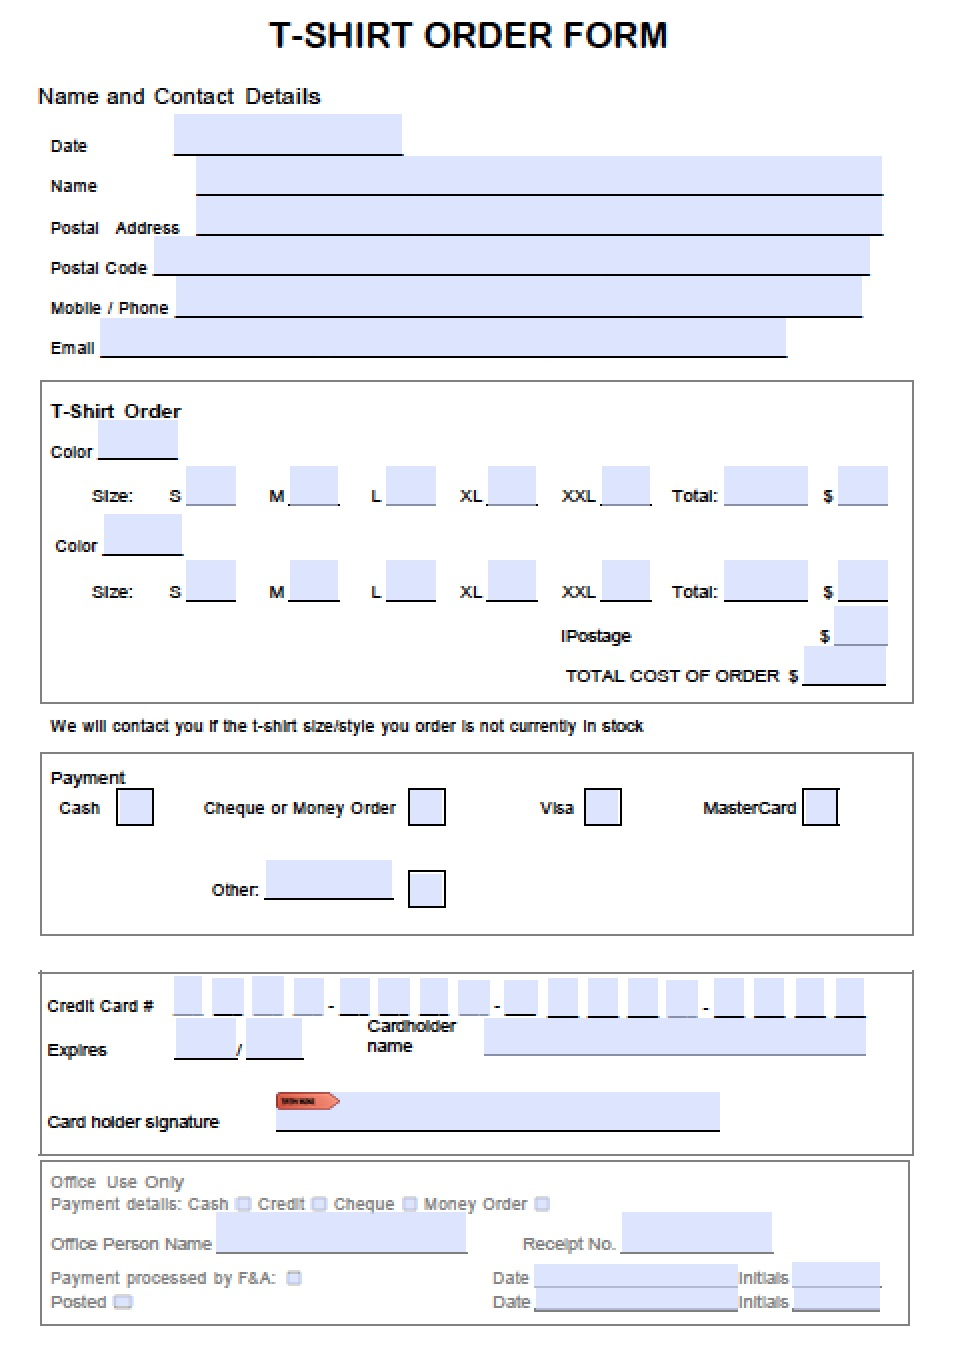 Shirt order form template word maxwellsz